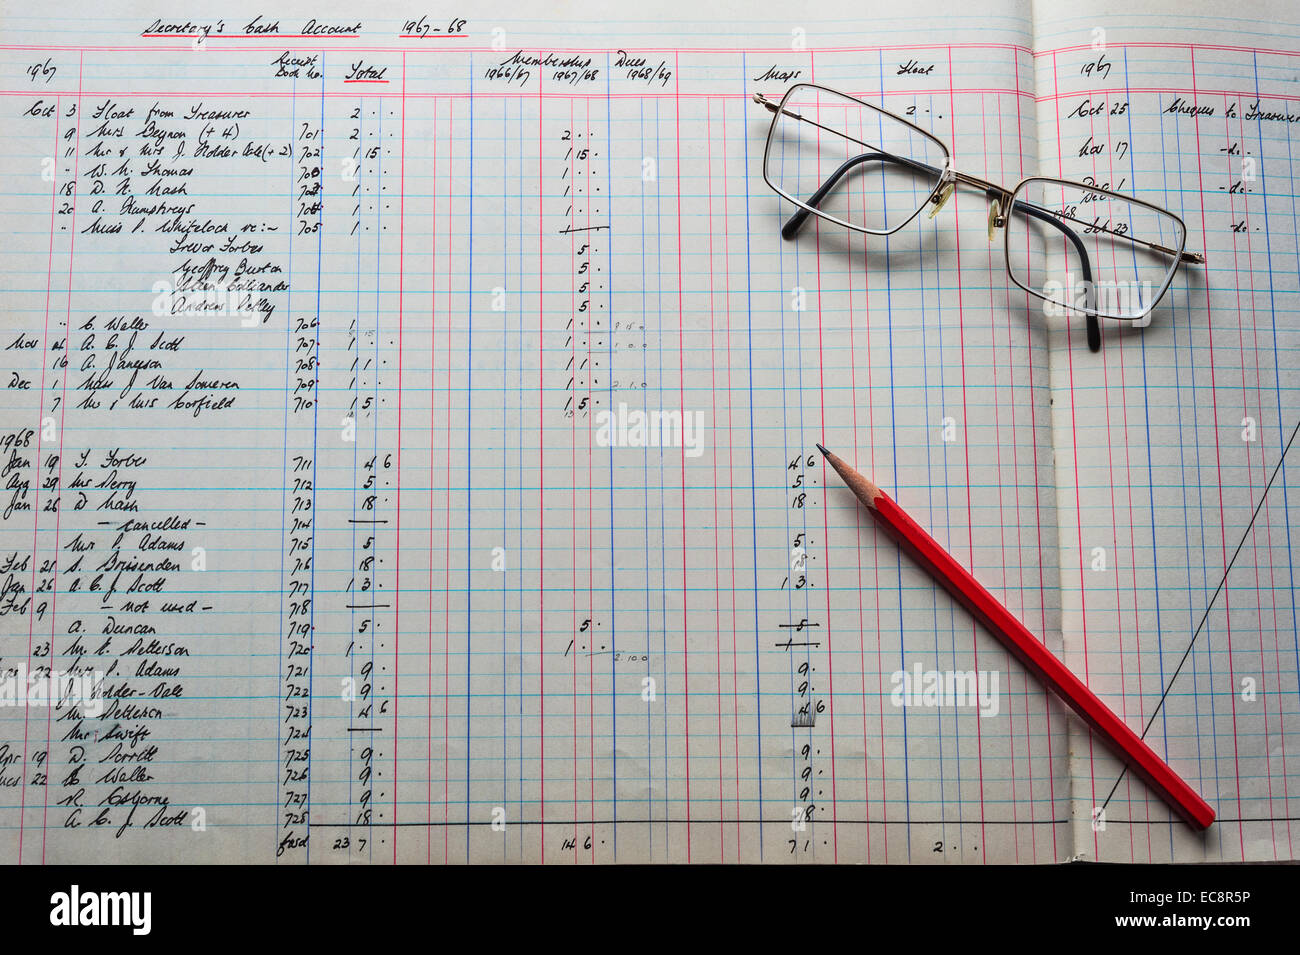 An old accounts ledger, with figures in pounds shillings and pence An accountant's  pencil and glasses lying - Stock Image